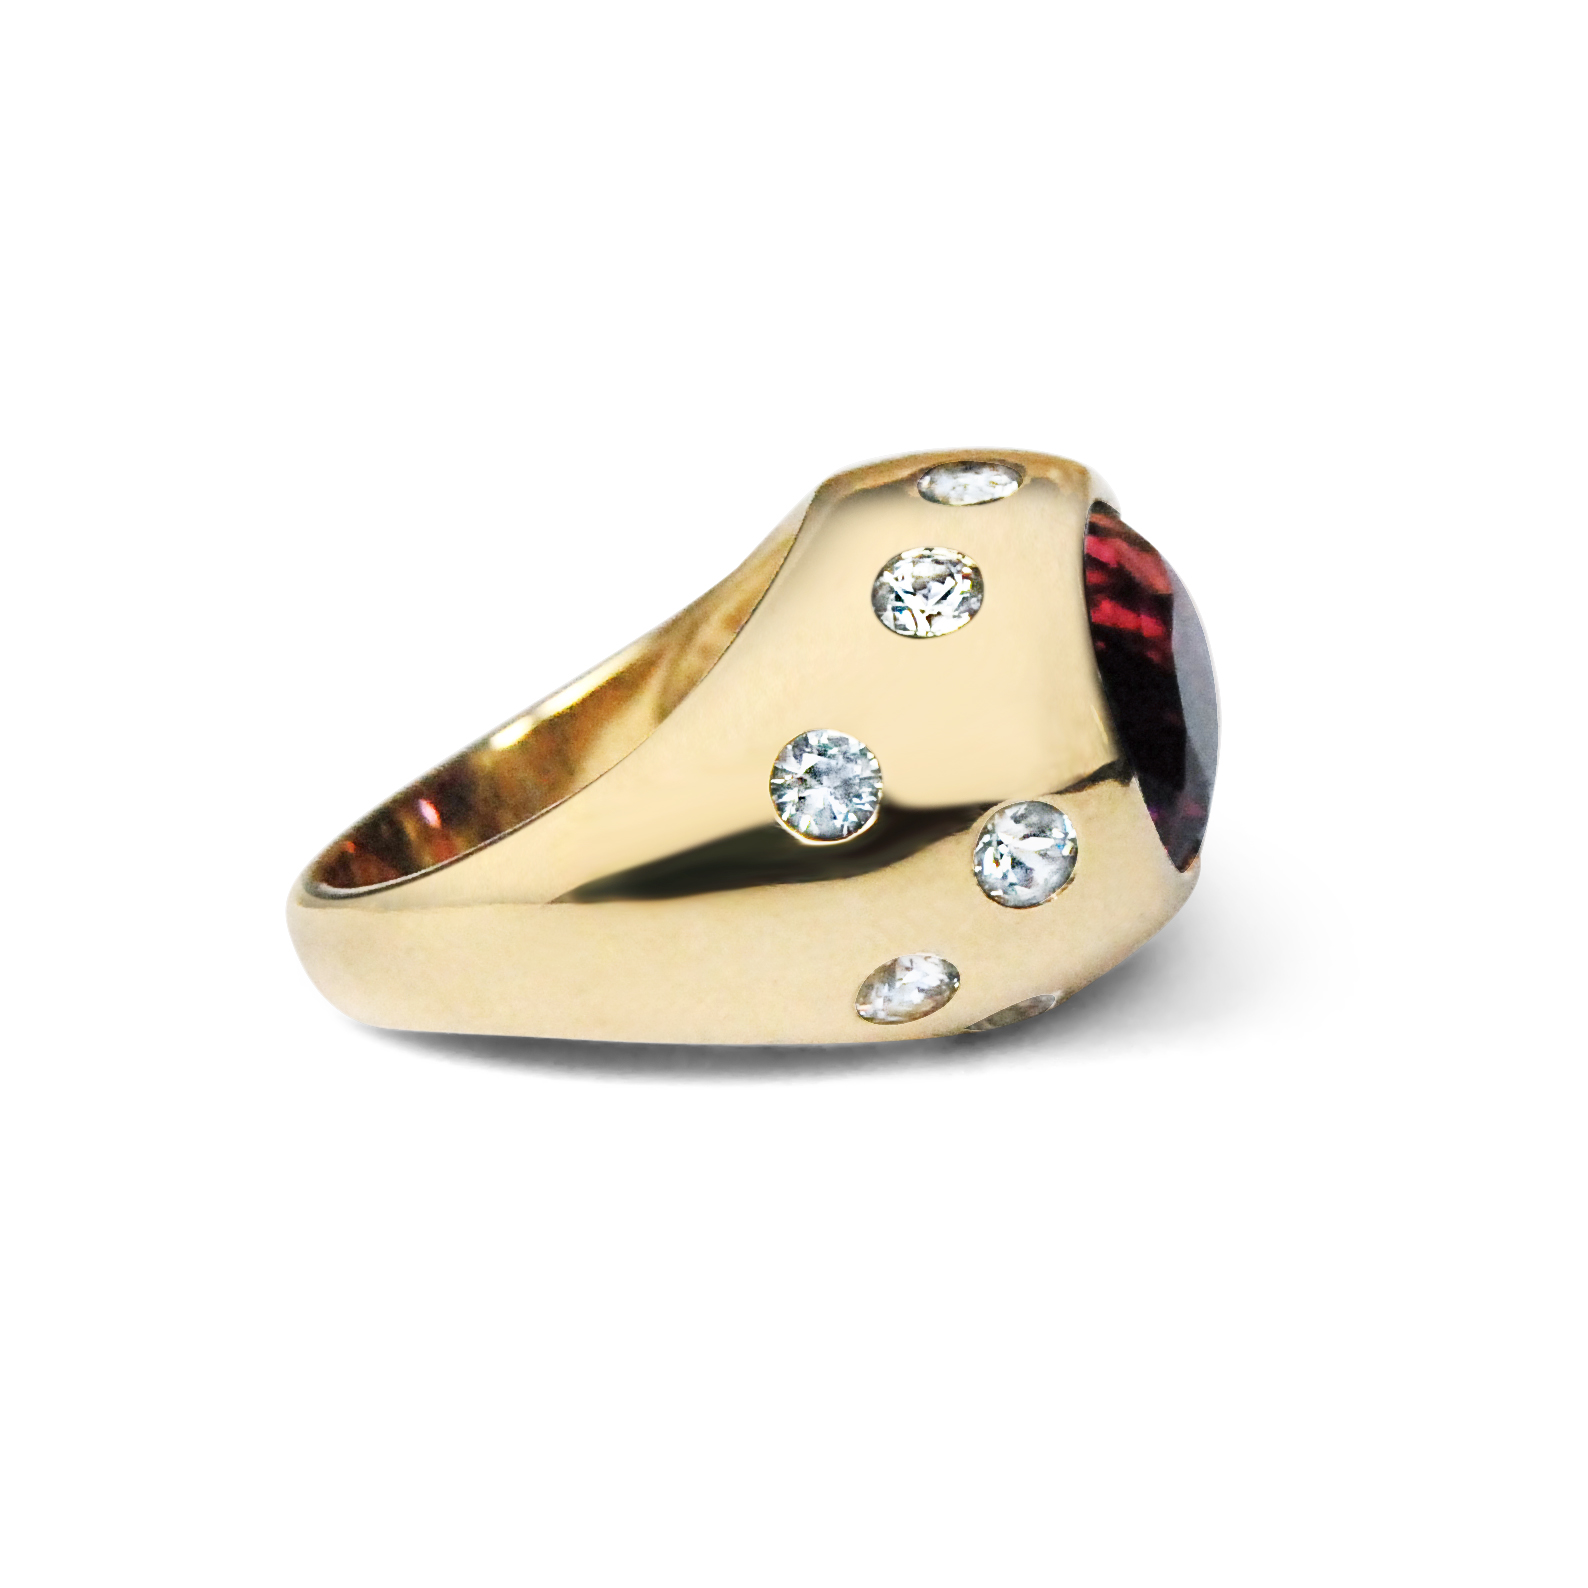 Garnet-and-white-sapphire-gold-cocktail-bombe-ring-2 .jpg